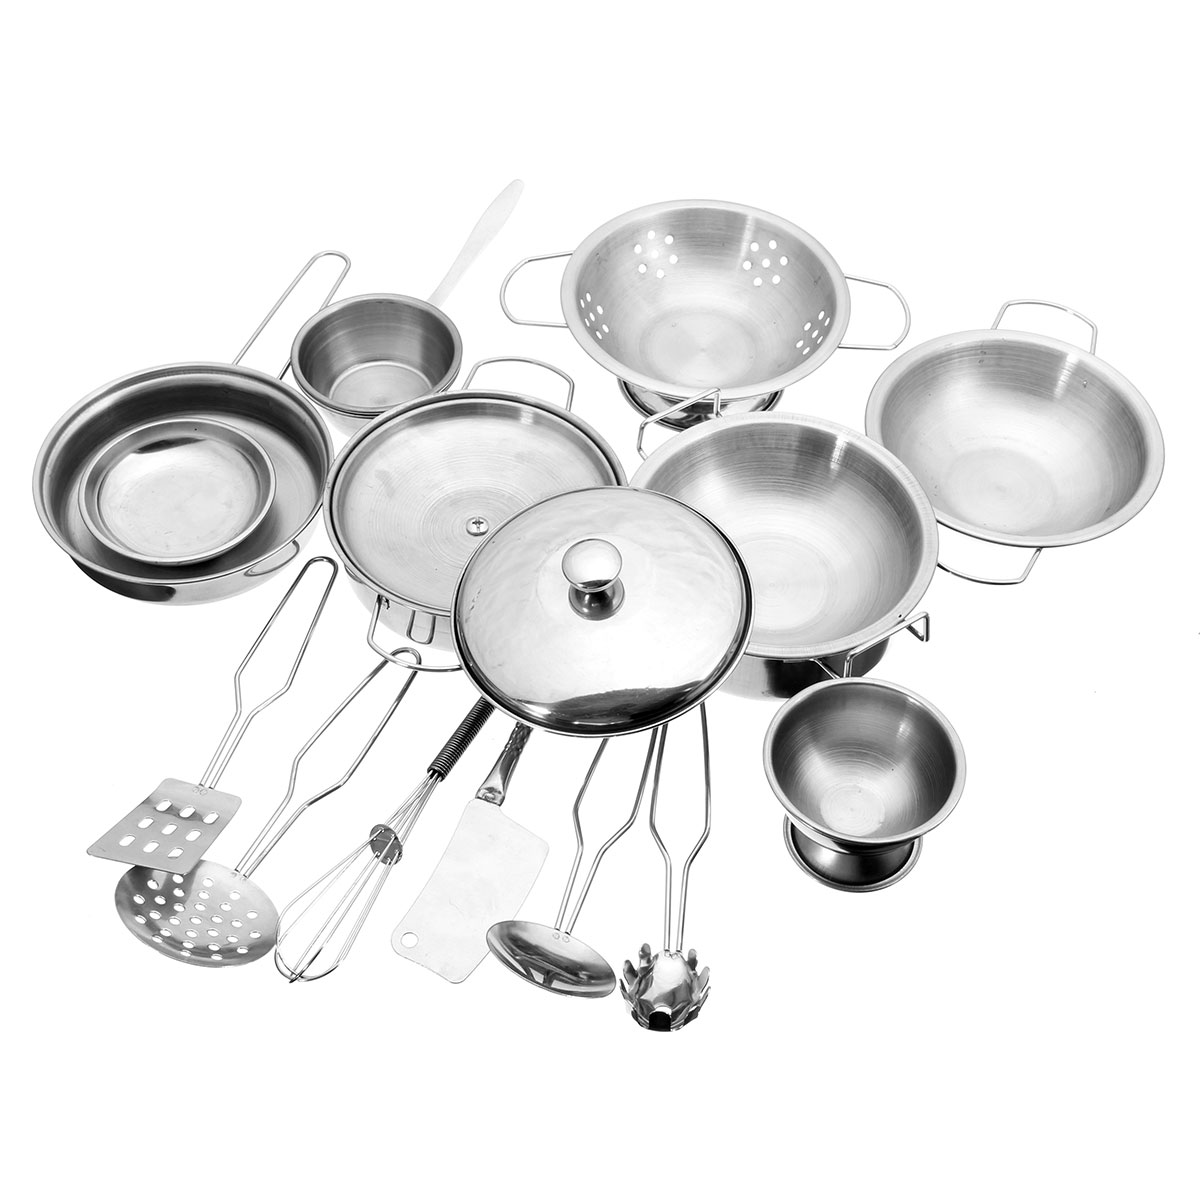 16Pcs Stainless Steel Kitchen Cookware Kitchen Cooking Set 16Pcs Pots & Pans Toy For Children Play House Toys